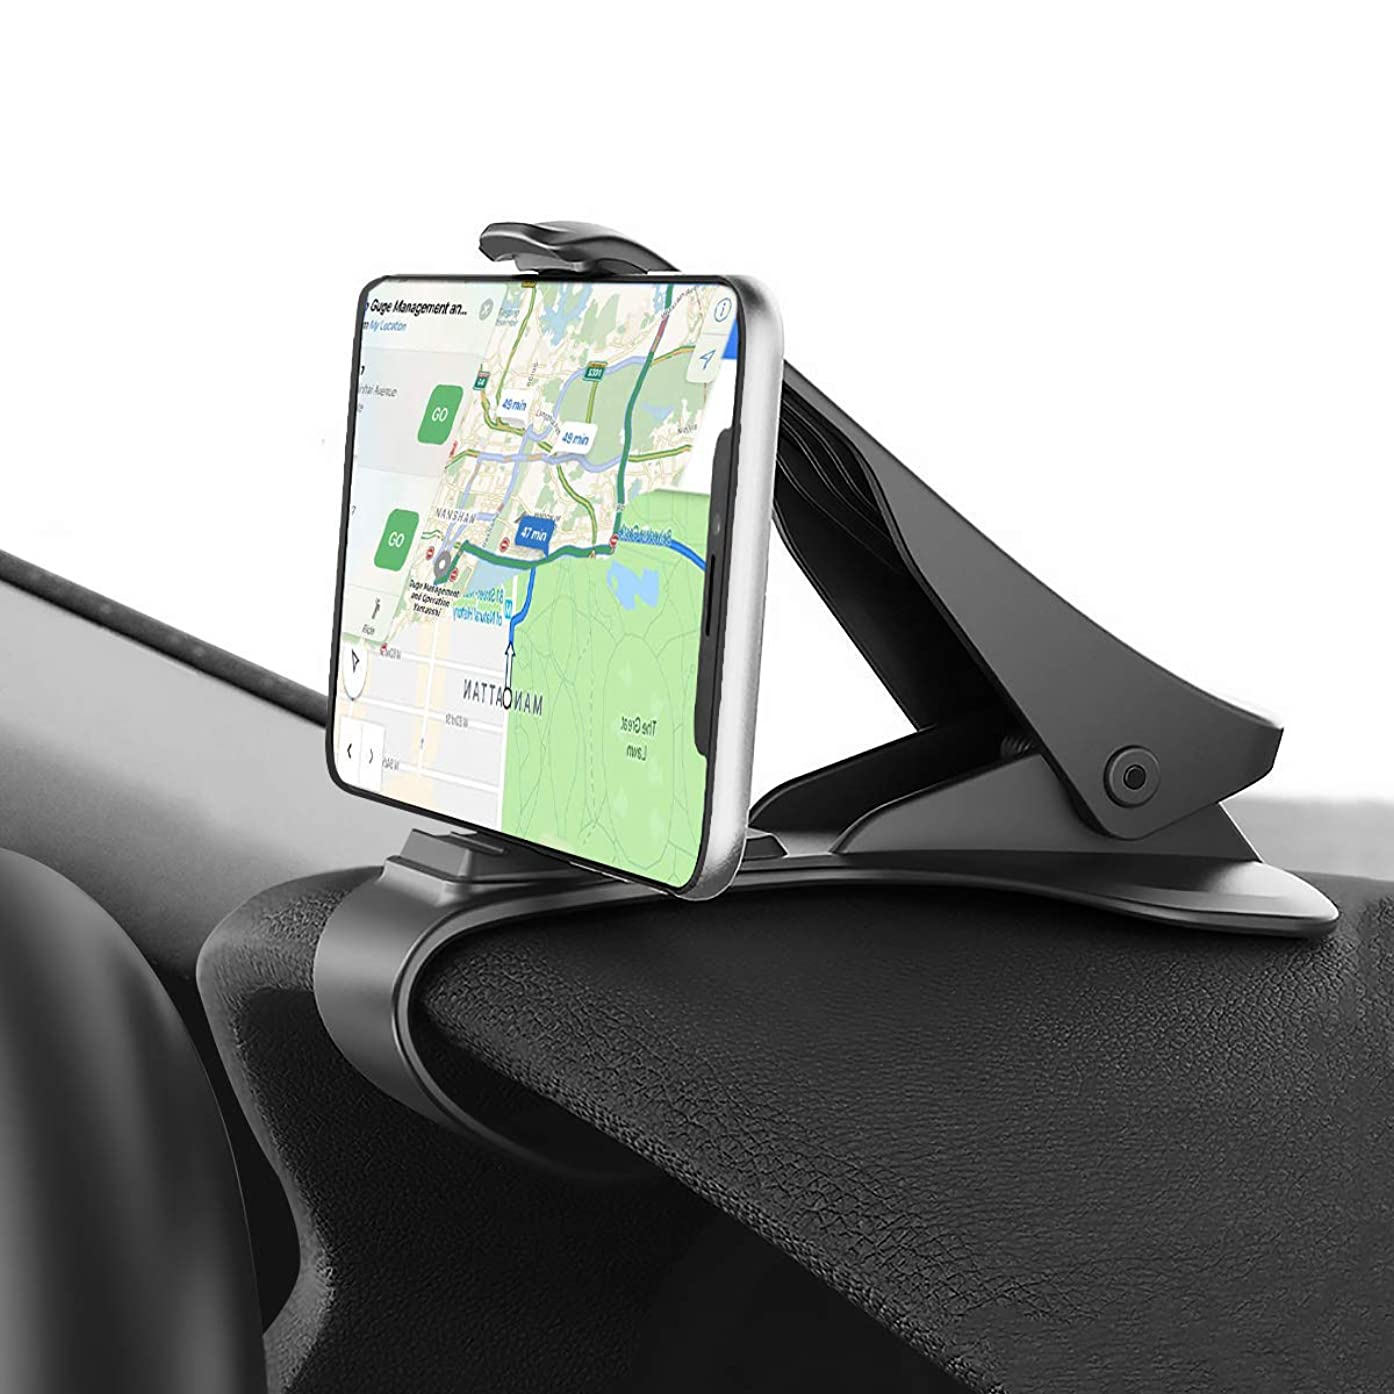 Car Phone Mount, CRRISE Dashboard Clip Car Phone Holder,Non-Slip Durable Compatible with iPhone Xs/XS/MAX/XR/X/8/8Plus/7/7Plus/6/6Plus, Galaxy S7/8/9/10, Google Nexus and More